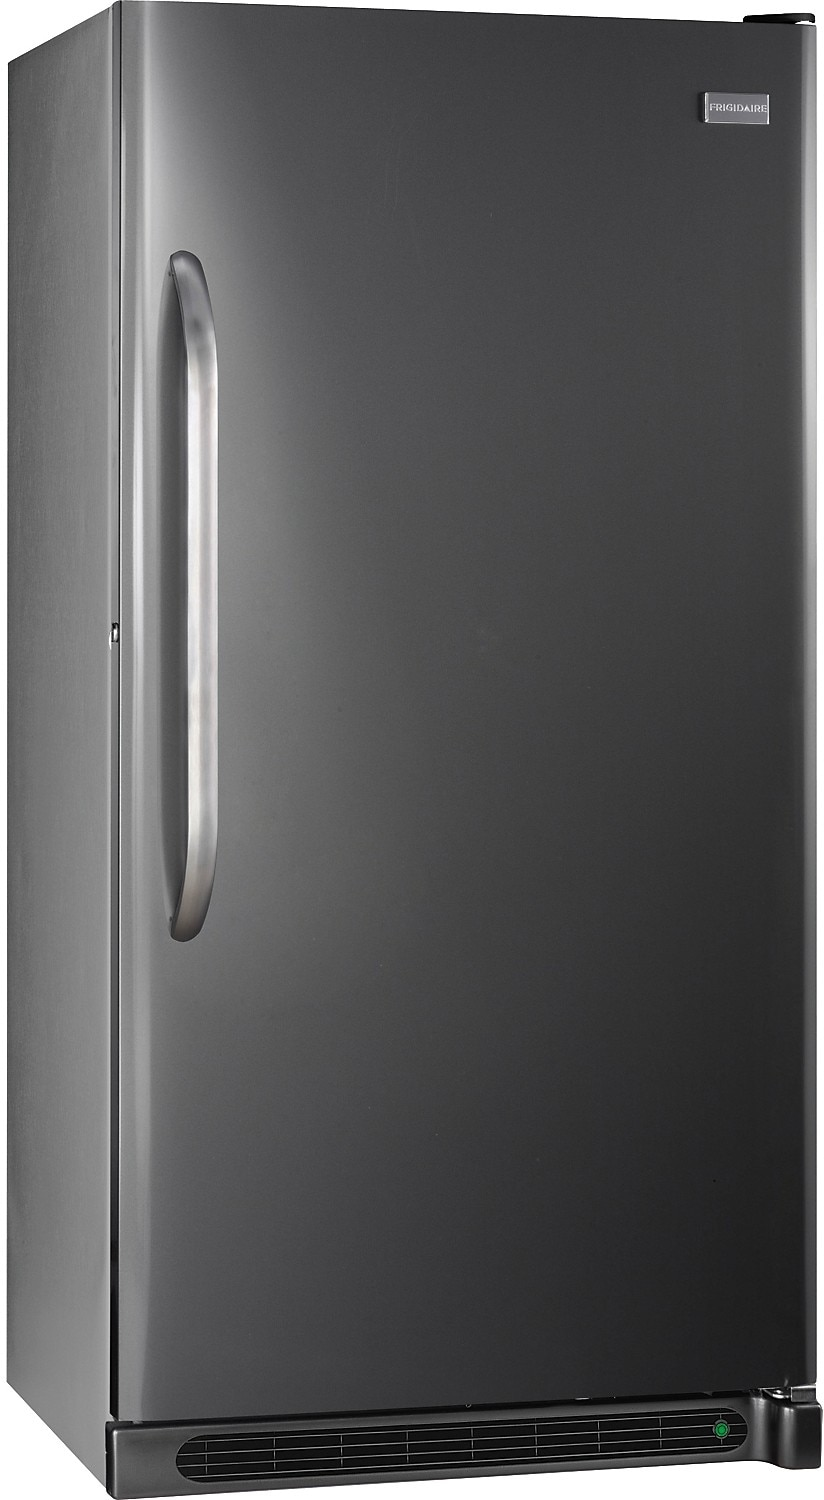 Frigidaire 20.5 Cu. Ft. Frost-Free Upright Freezer - Slate